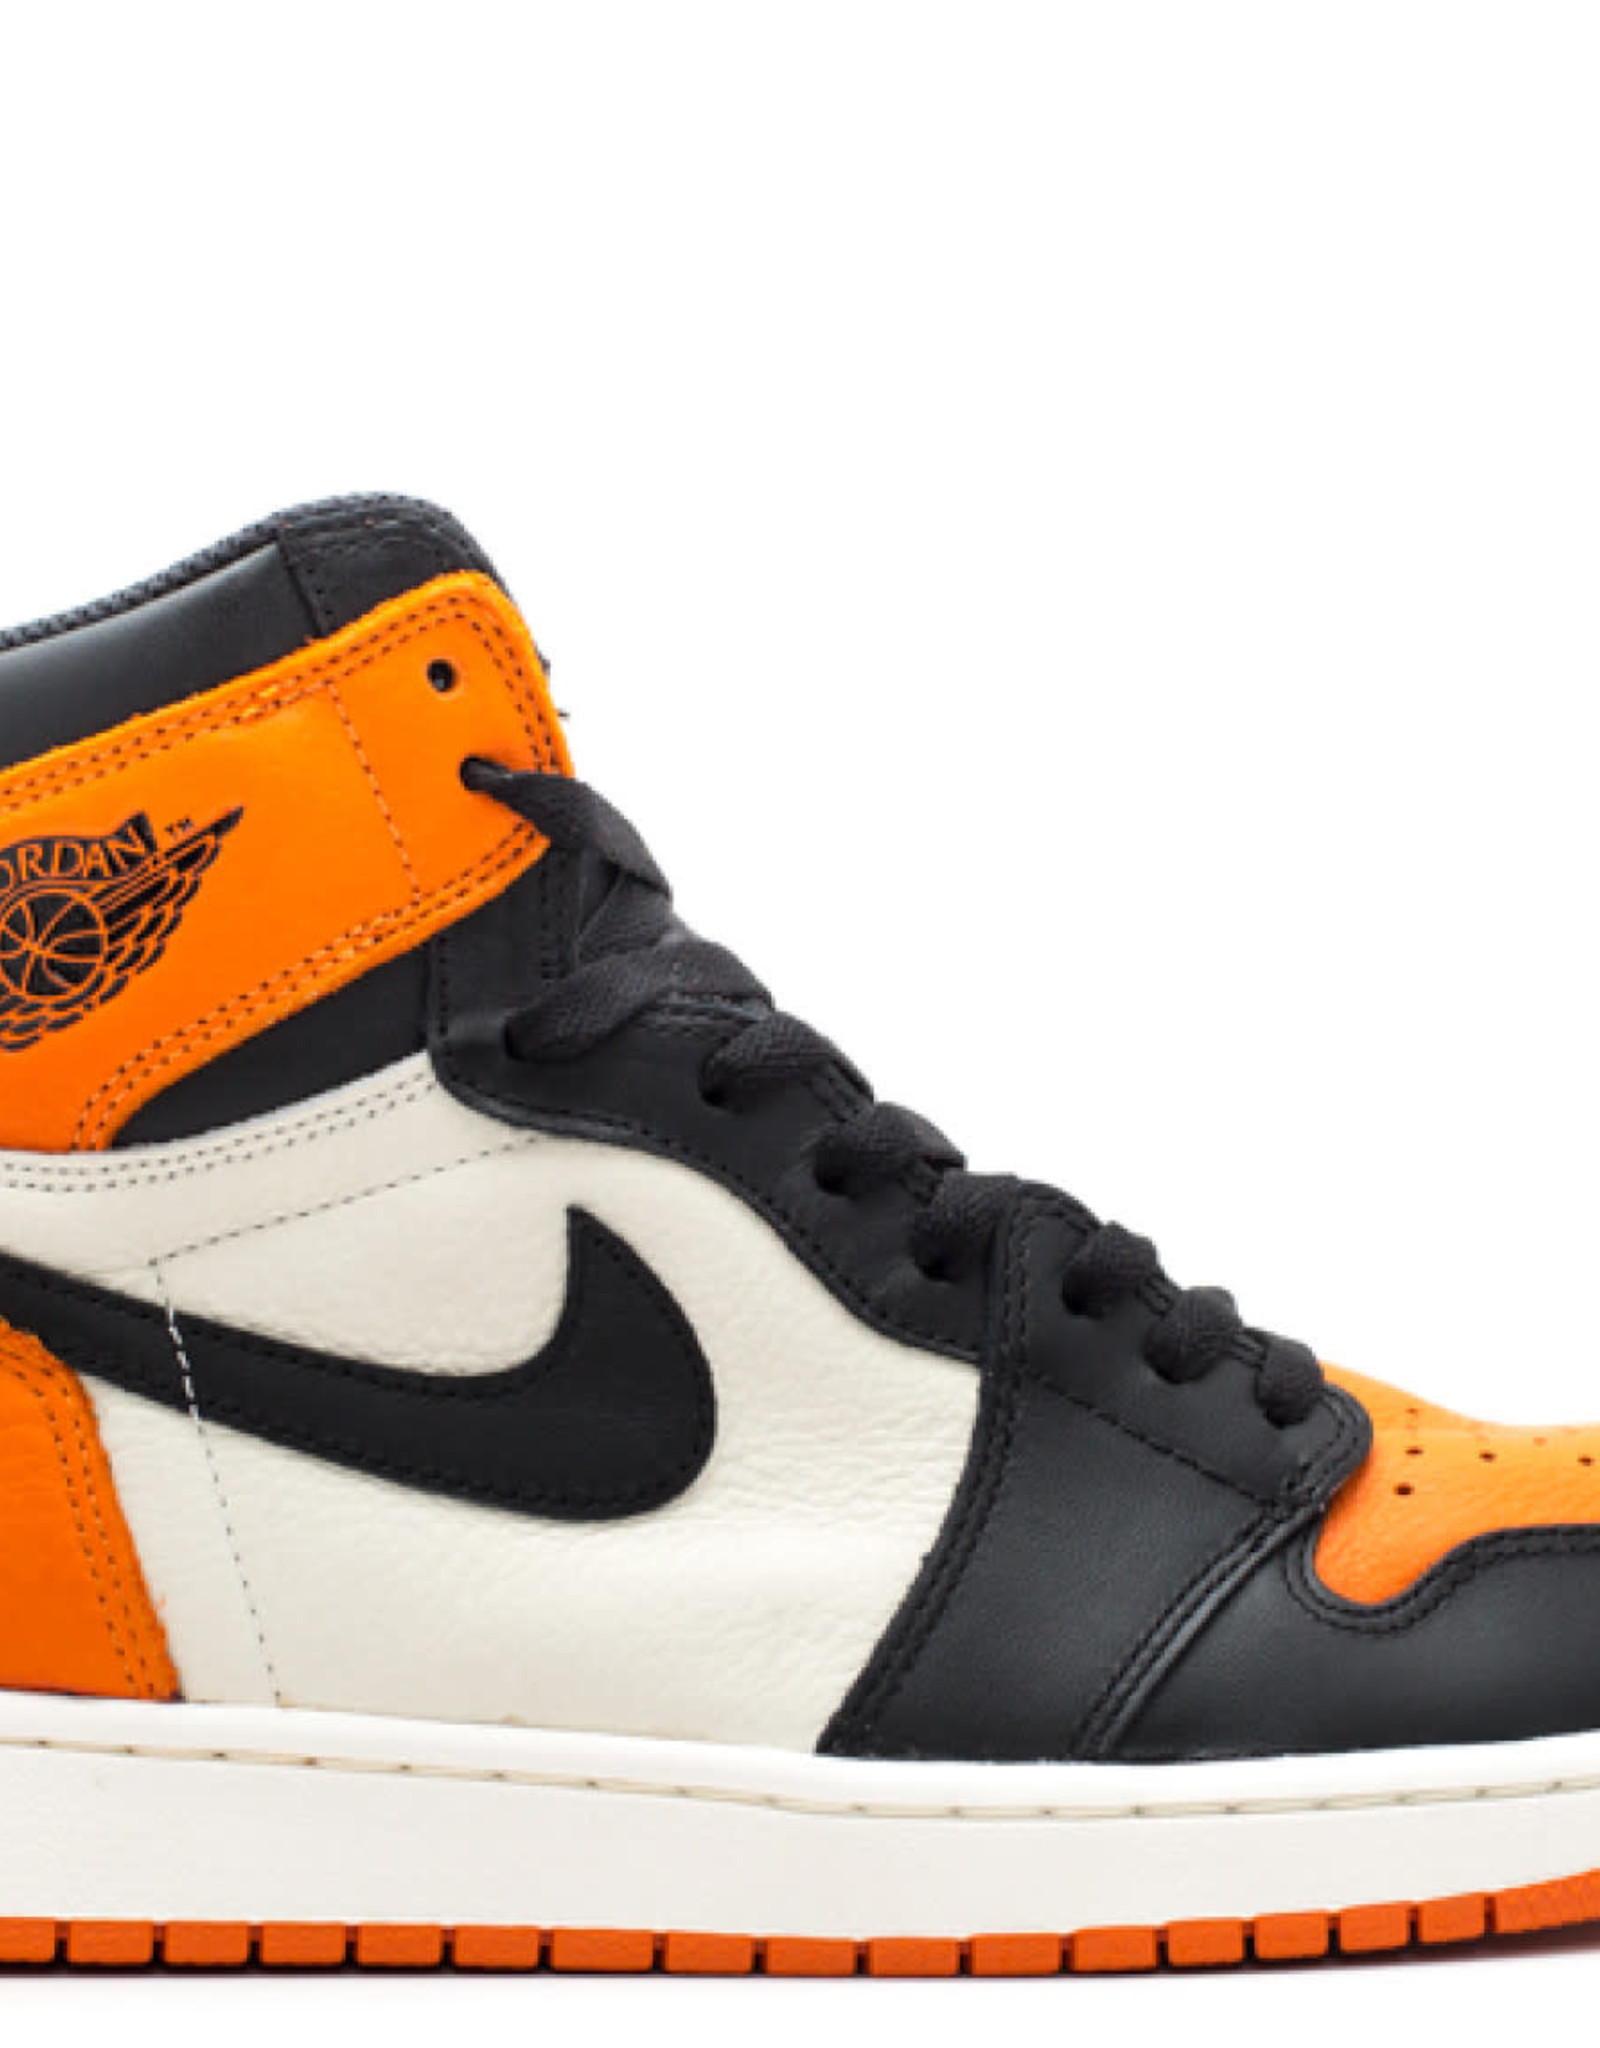 JORDAN Jordan 1 Retro Shattered Backboard